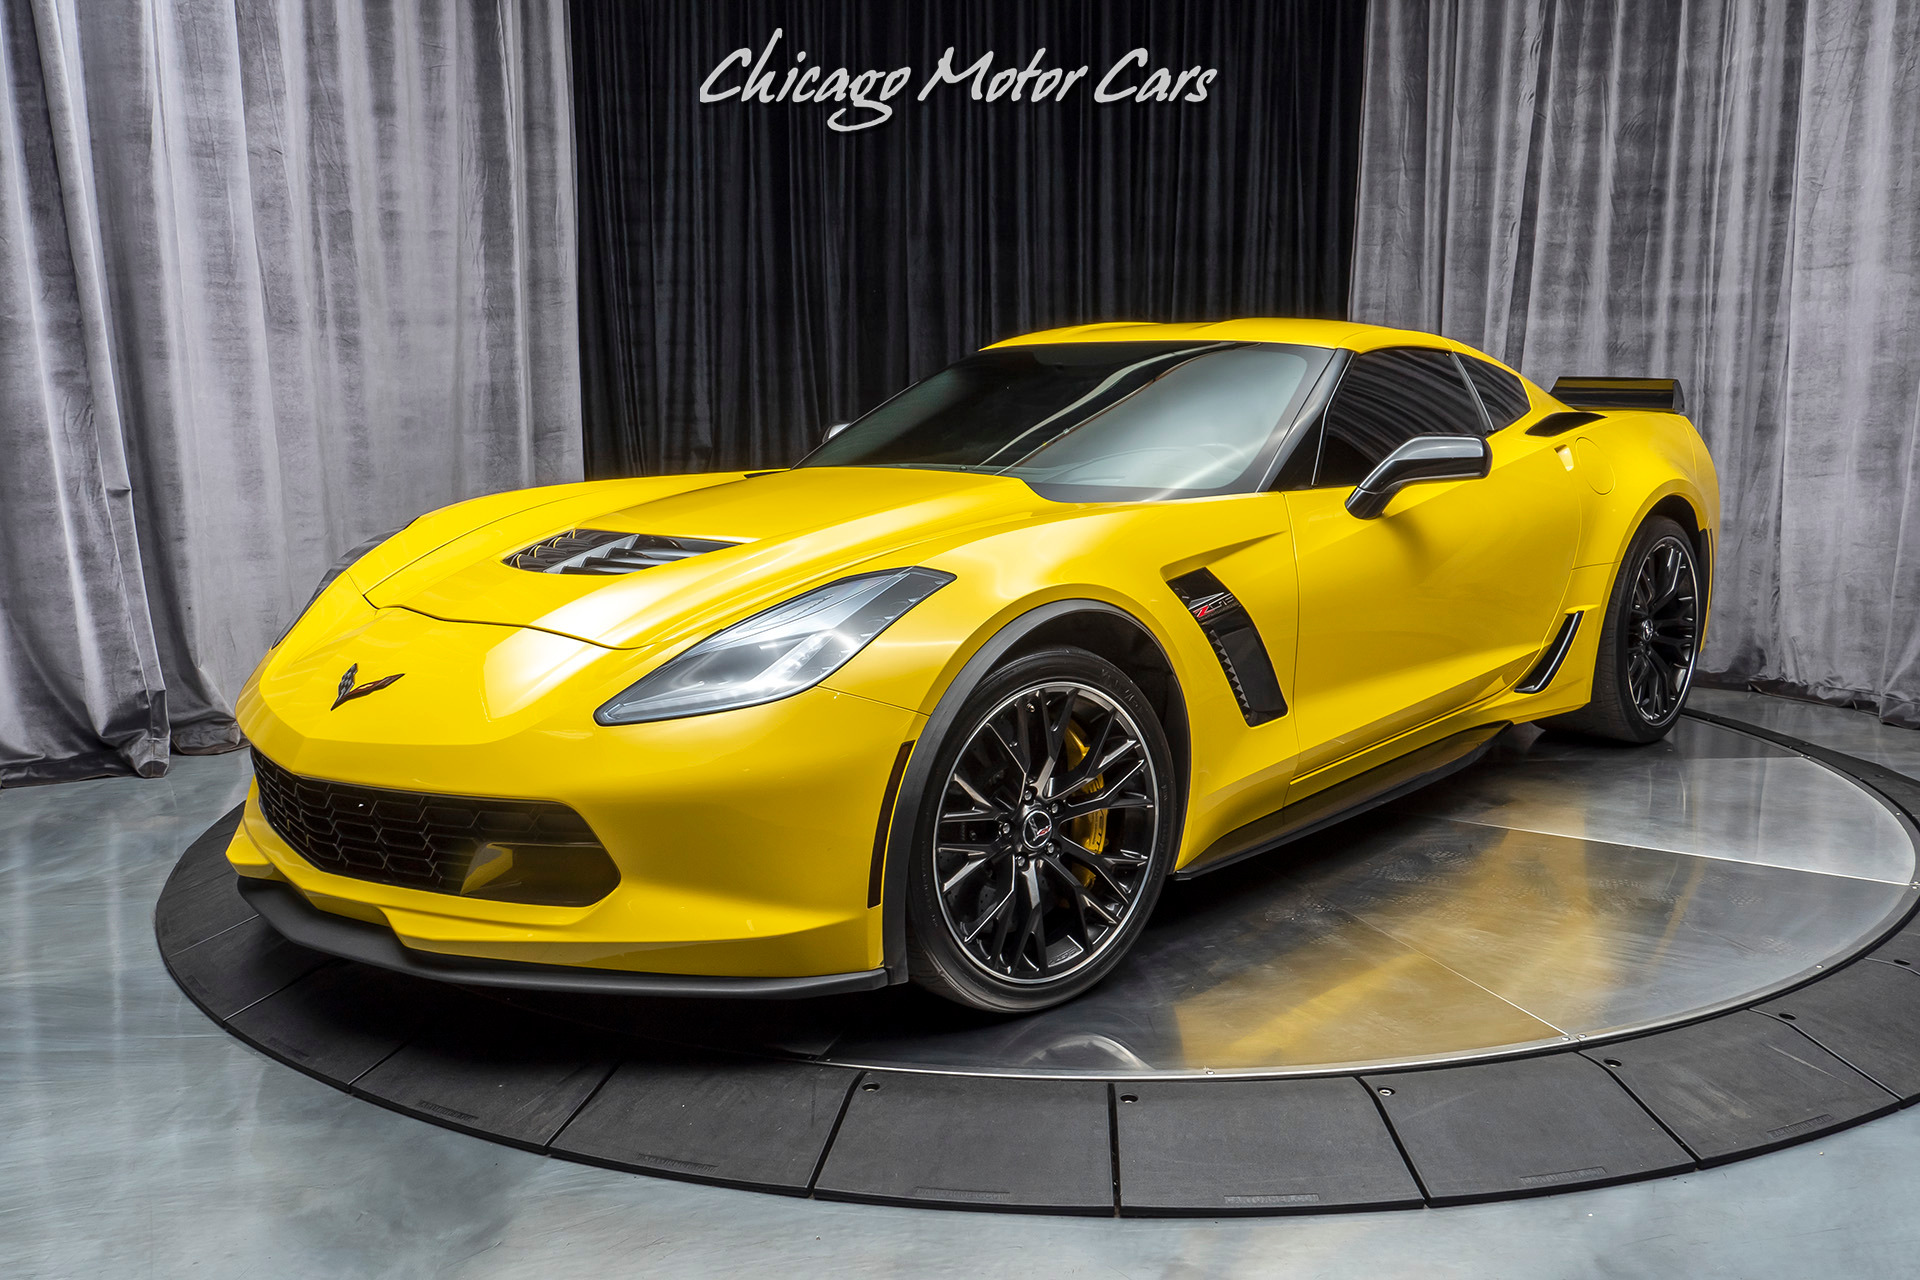 Used-2017-Chevrolet-Corvette-Z06-PROCHARGED-Coupe-Ceramic-Brake-Rotors-740-Wheel-HP